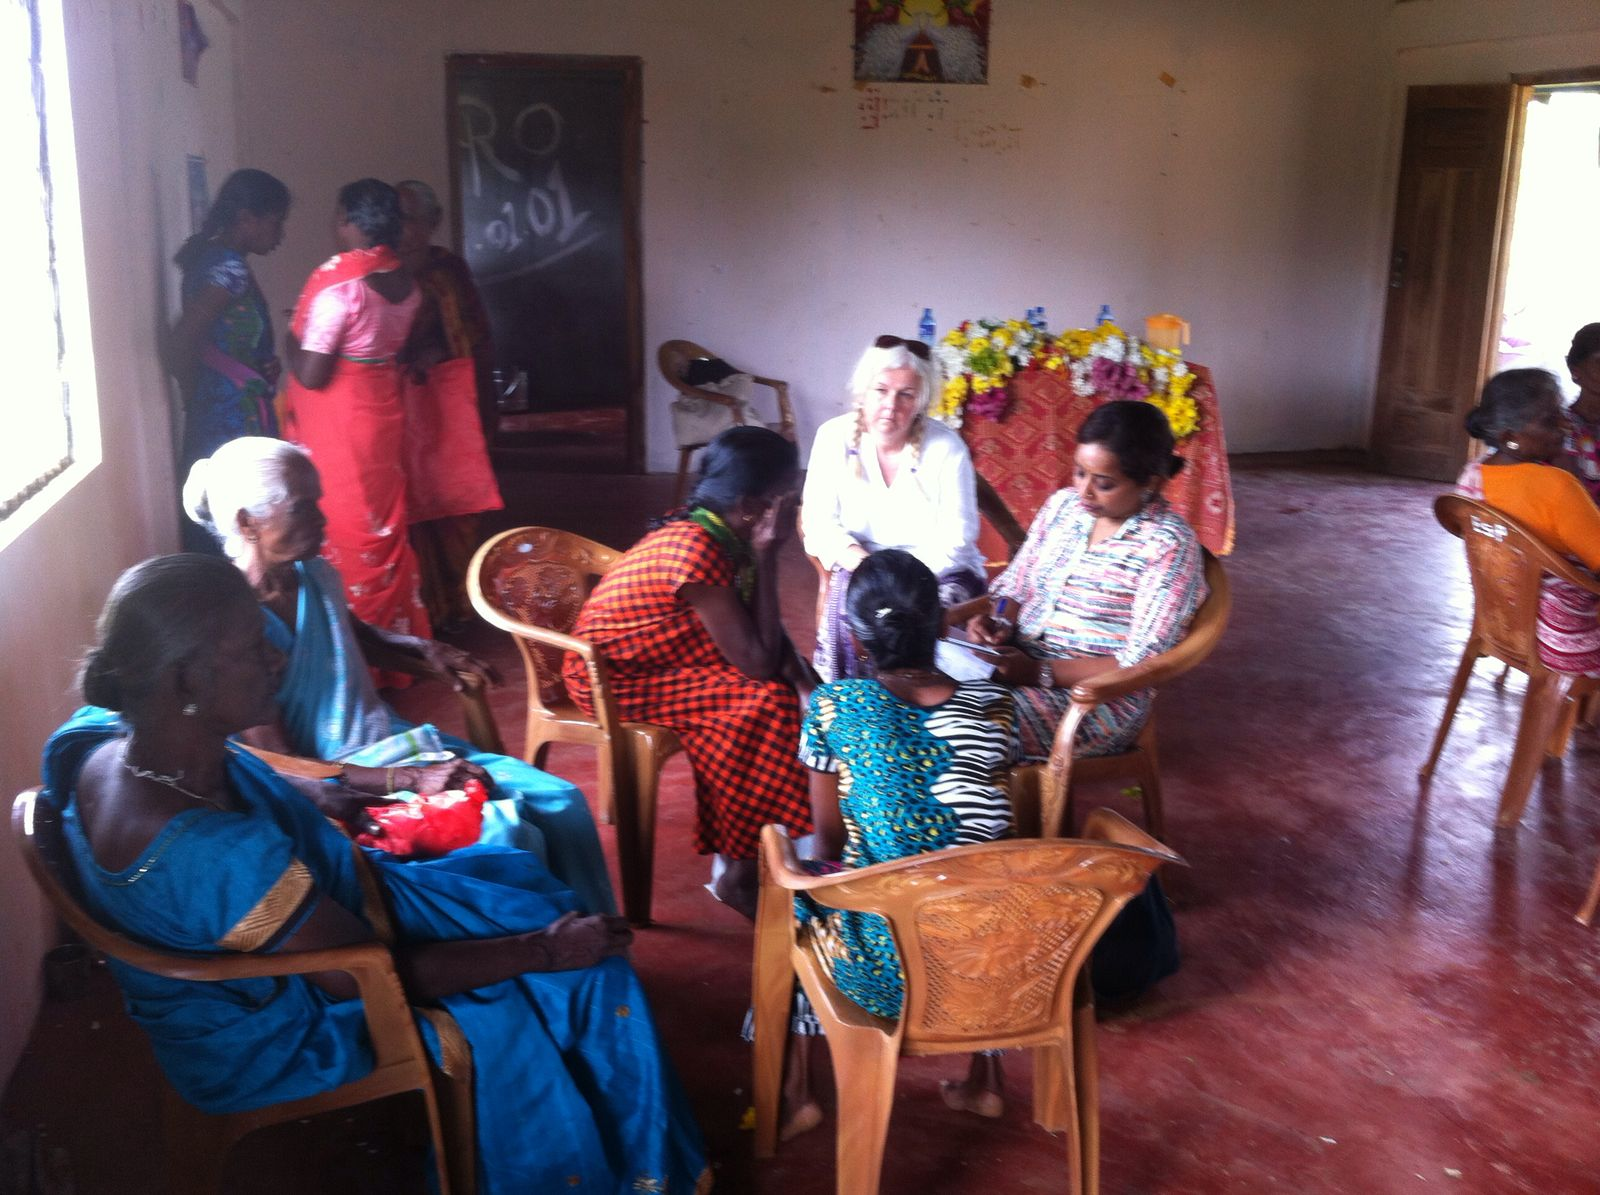 Elizabeth talking with elders to find out what they need.